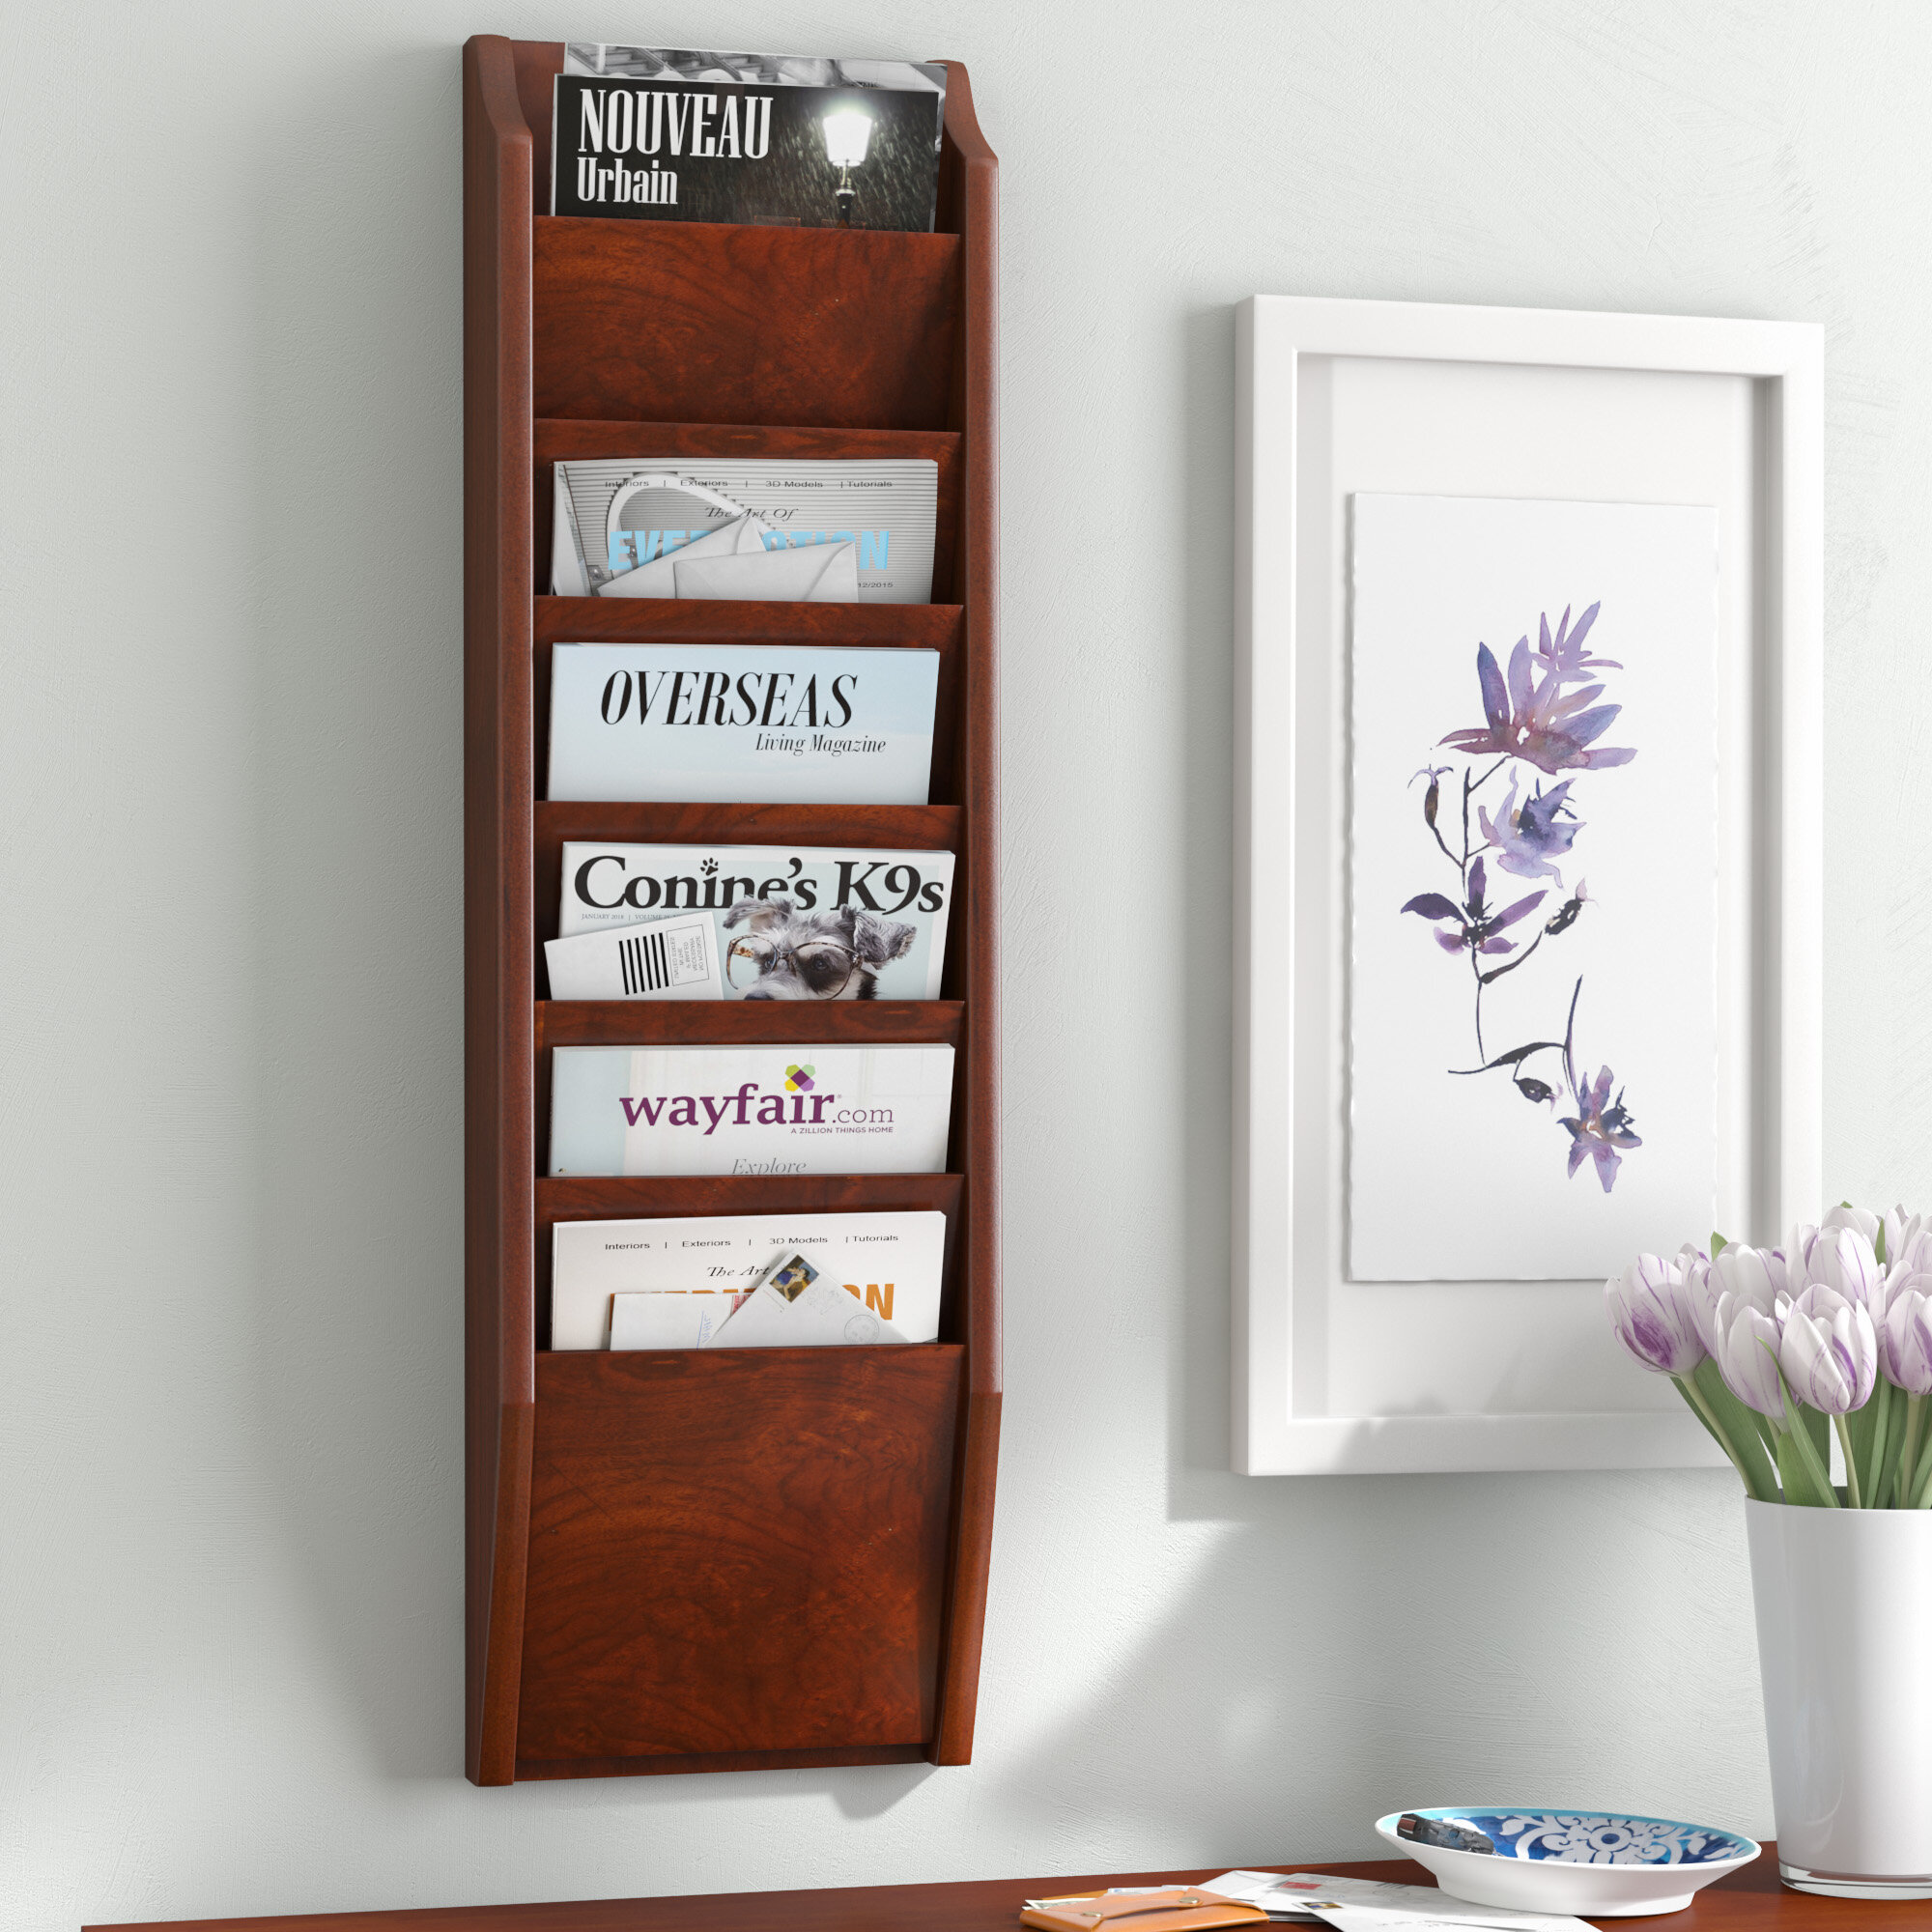 bathroom projects pinterest by best farmhouse shelf contemporary lovely note ash rack racks andersson plisado ideas inspirational of magazine wall diy karl mounted wood